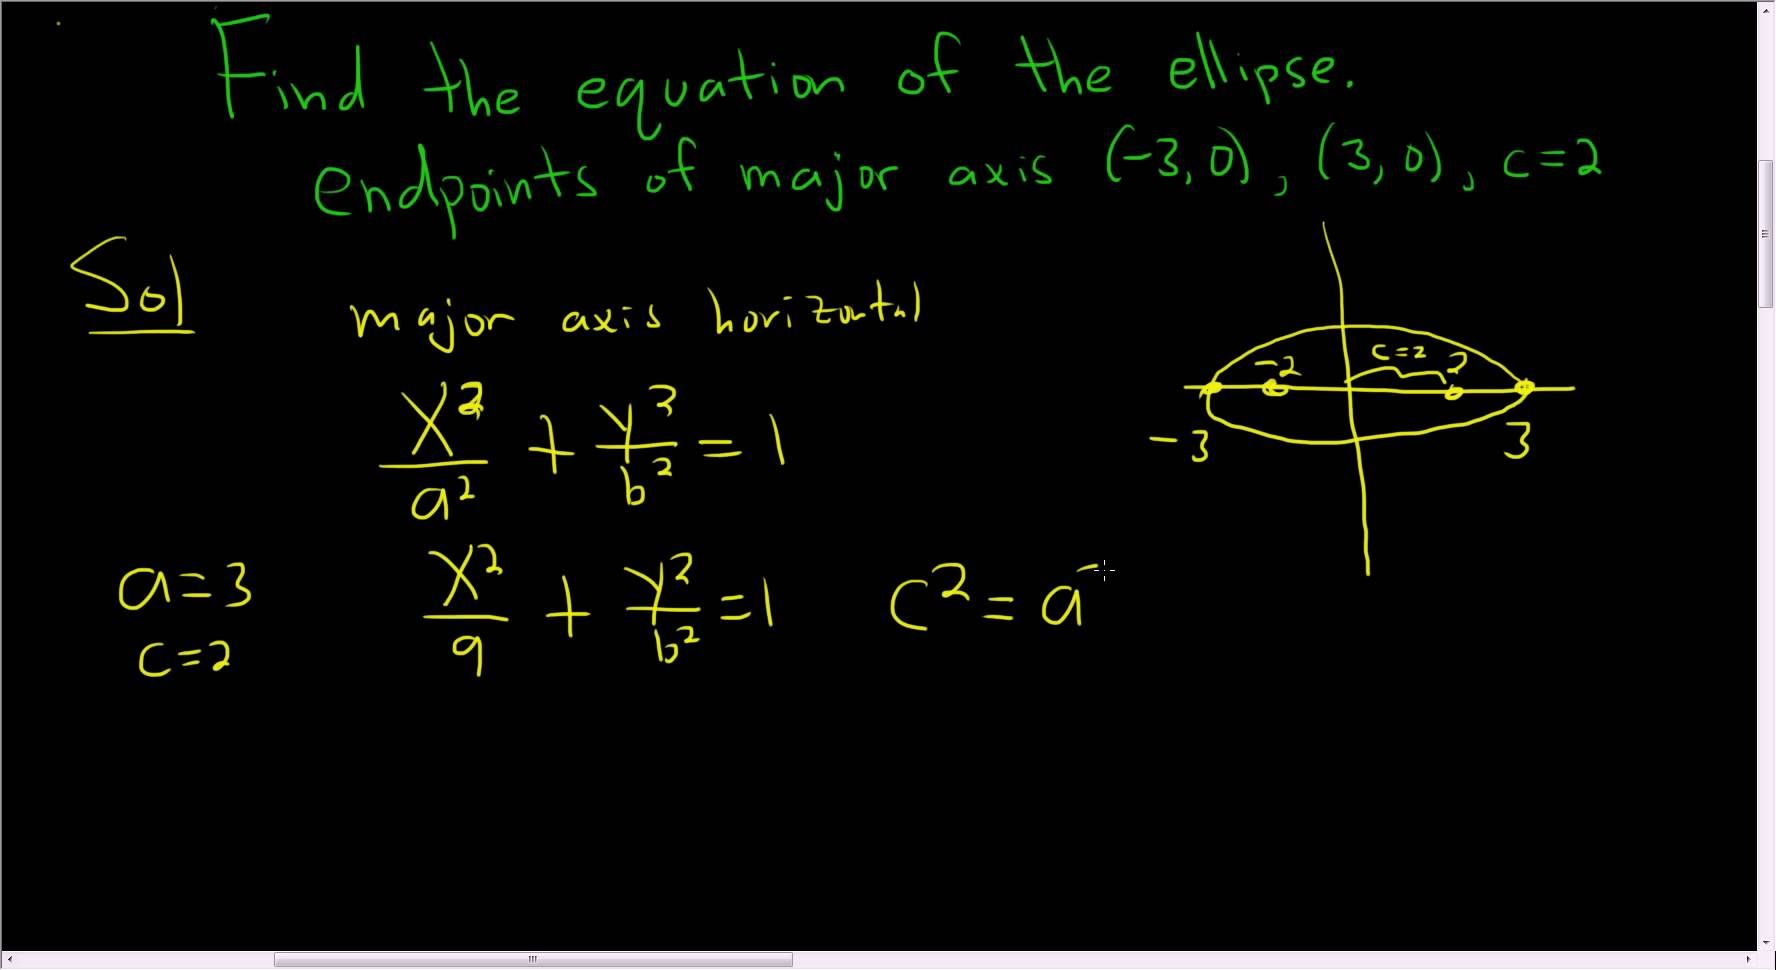 Finding The Equation Of An Ellipse Given The Endpoints Of